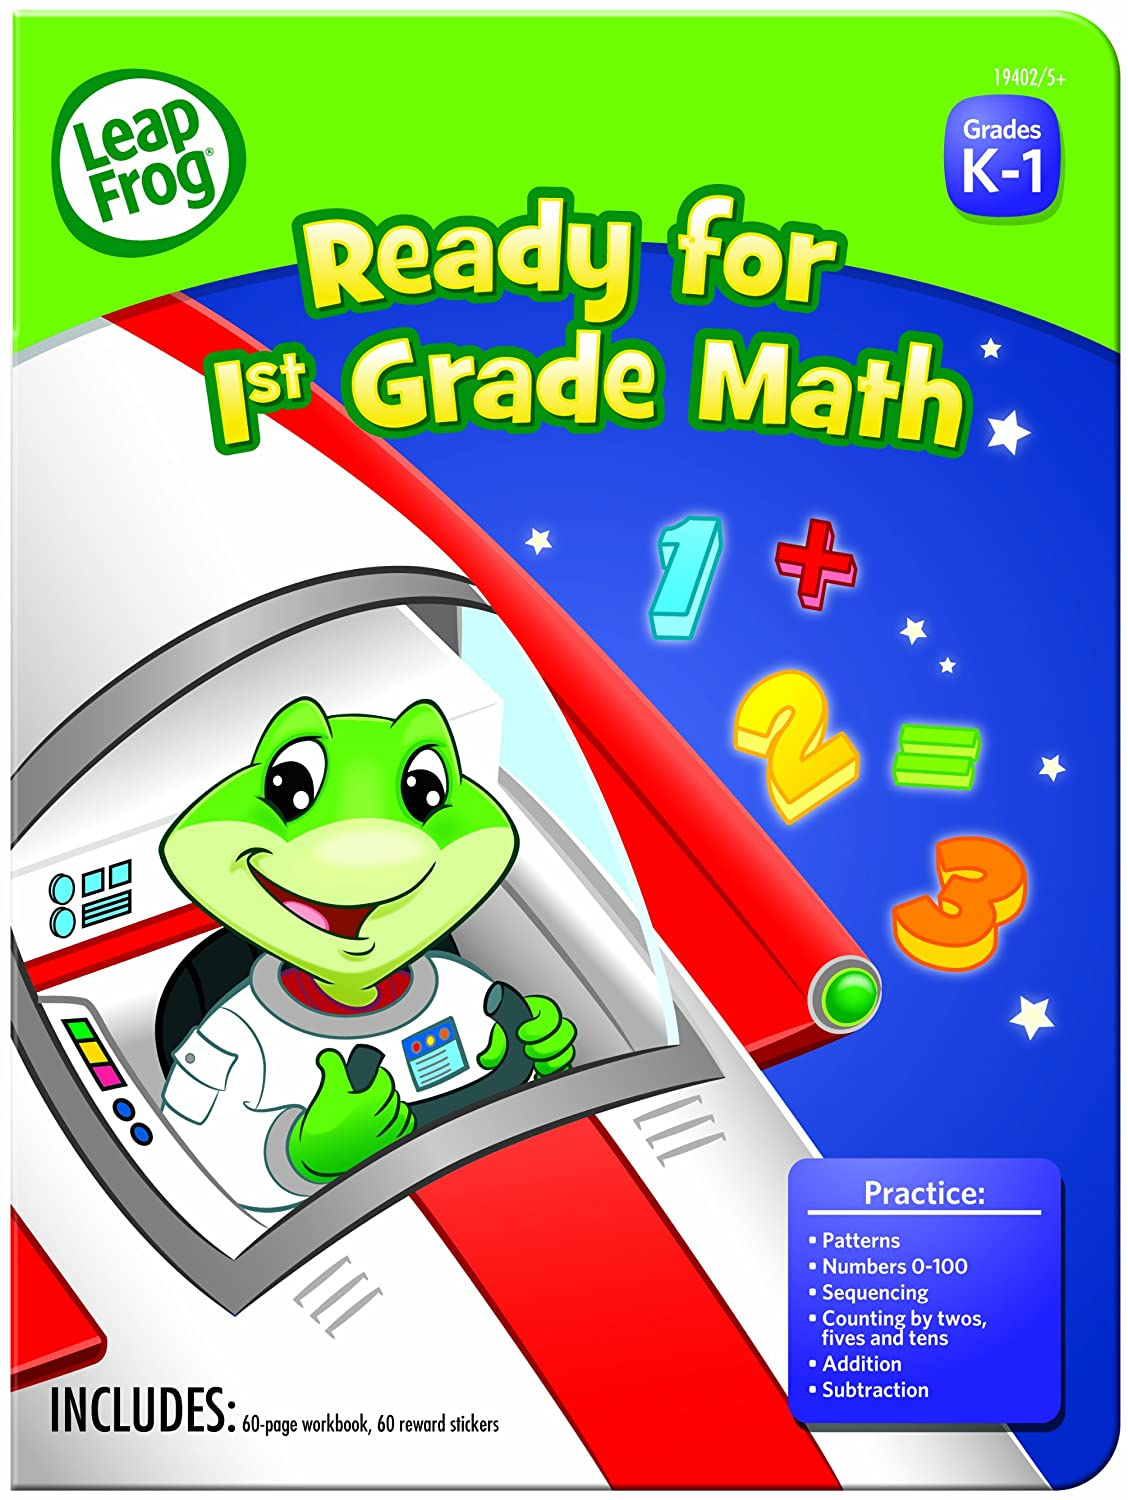 Worksheet First Grade Math Books amazon com leapfrog ready for 1st grade math workbook with 60 pages and reward stickers 19402 office products